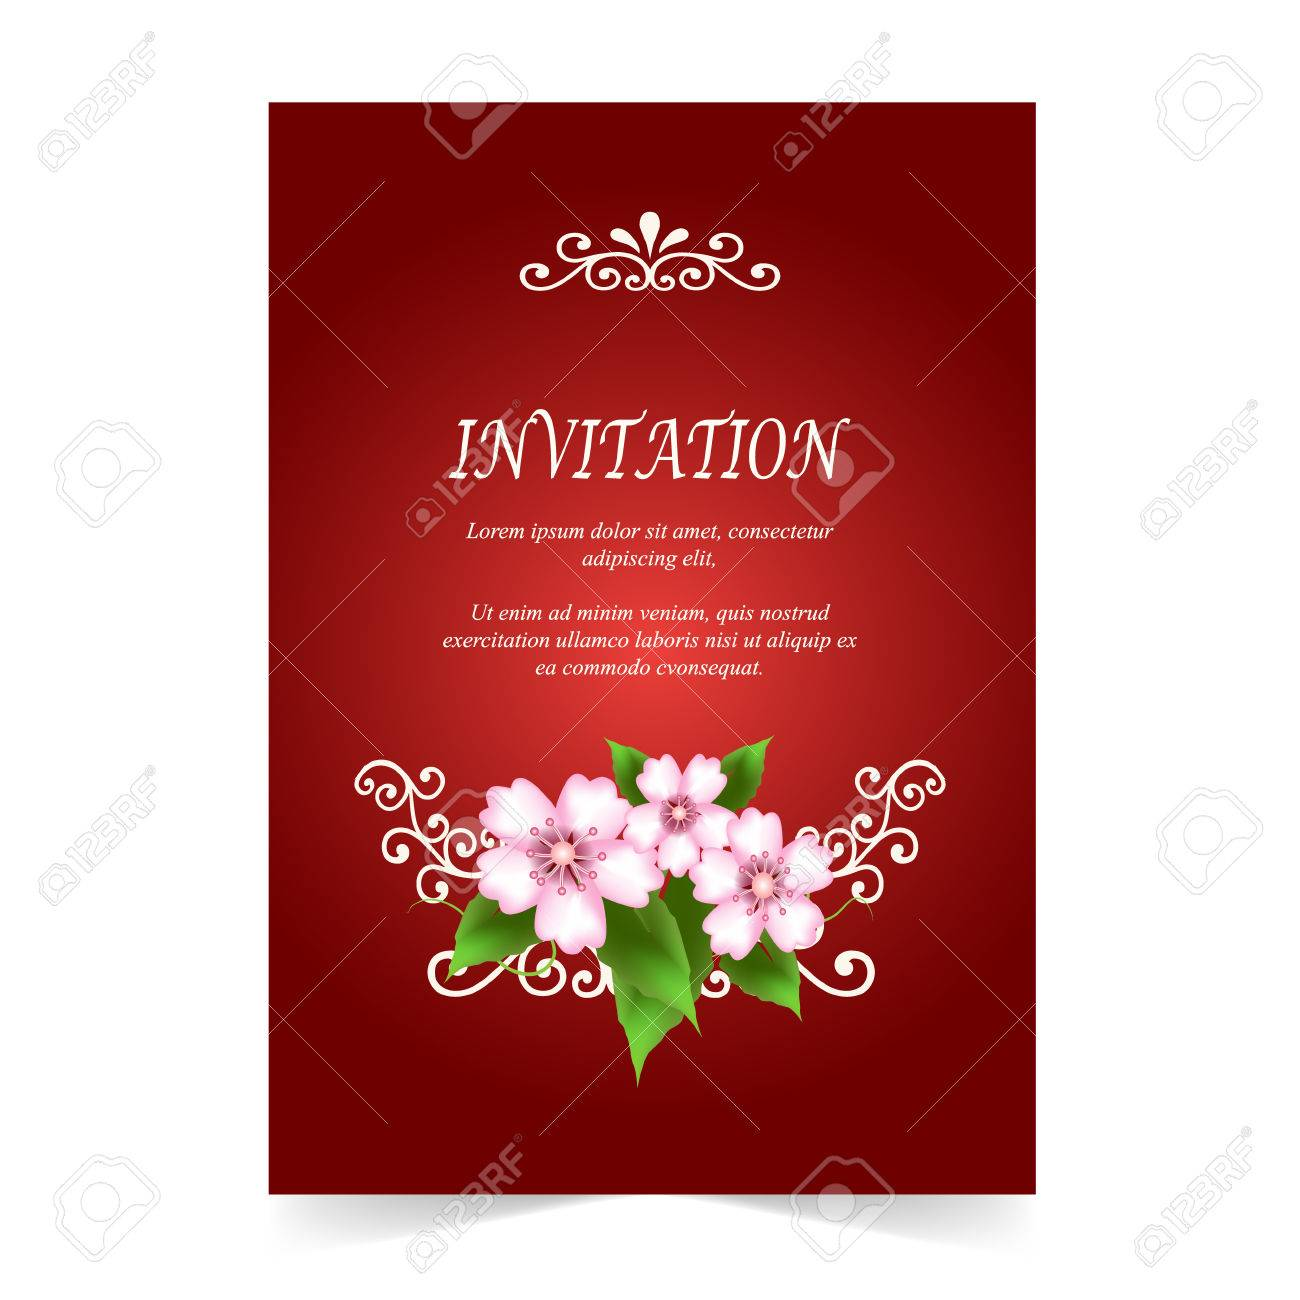 Invitation Card, Wedding Card With Cherry Blossom Flowers On ...